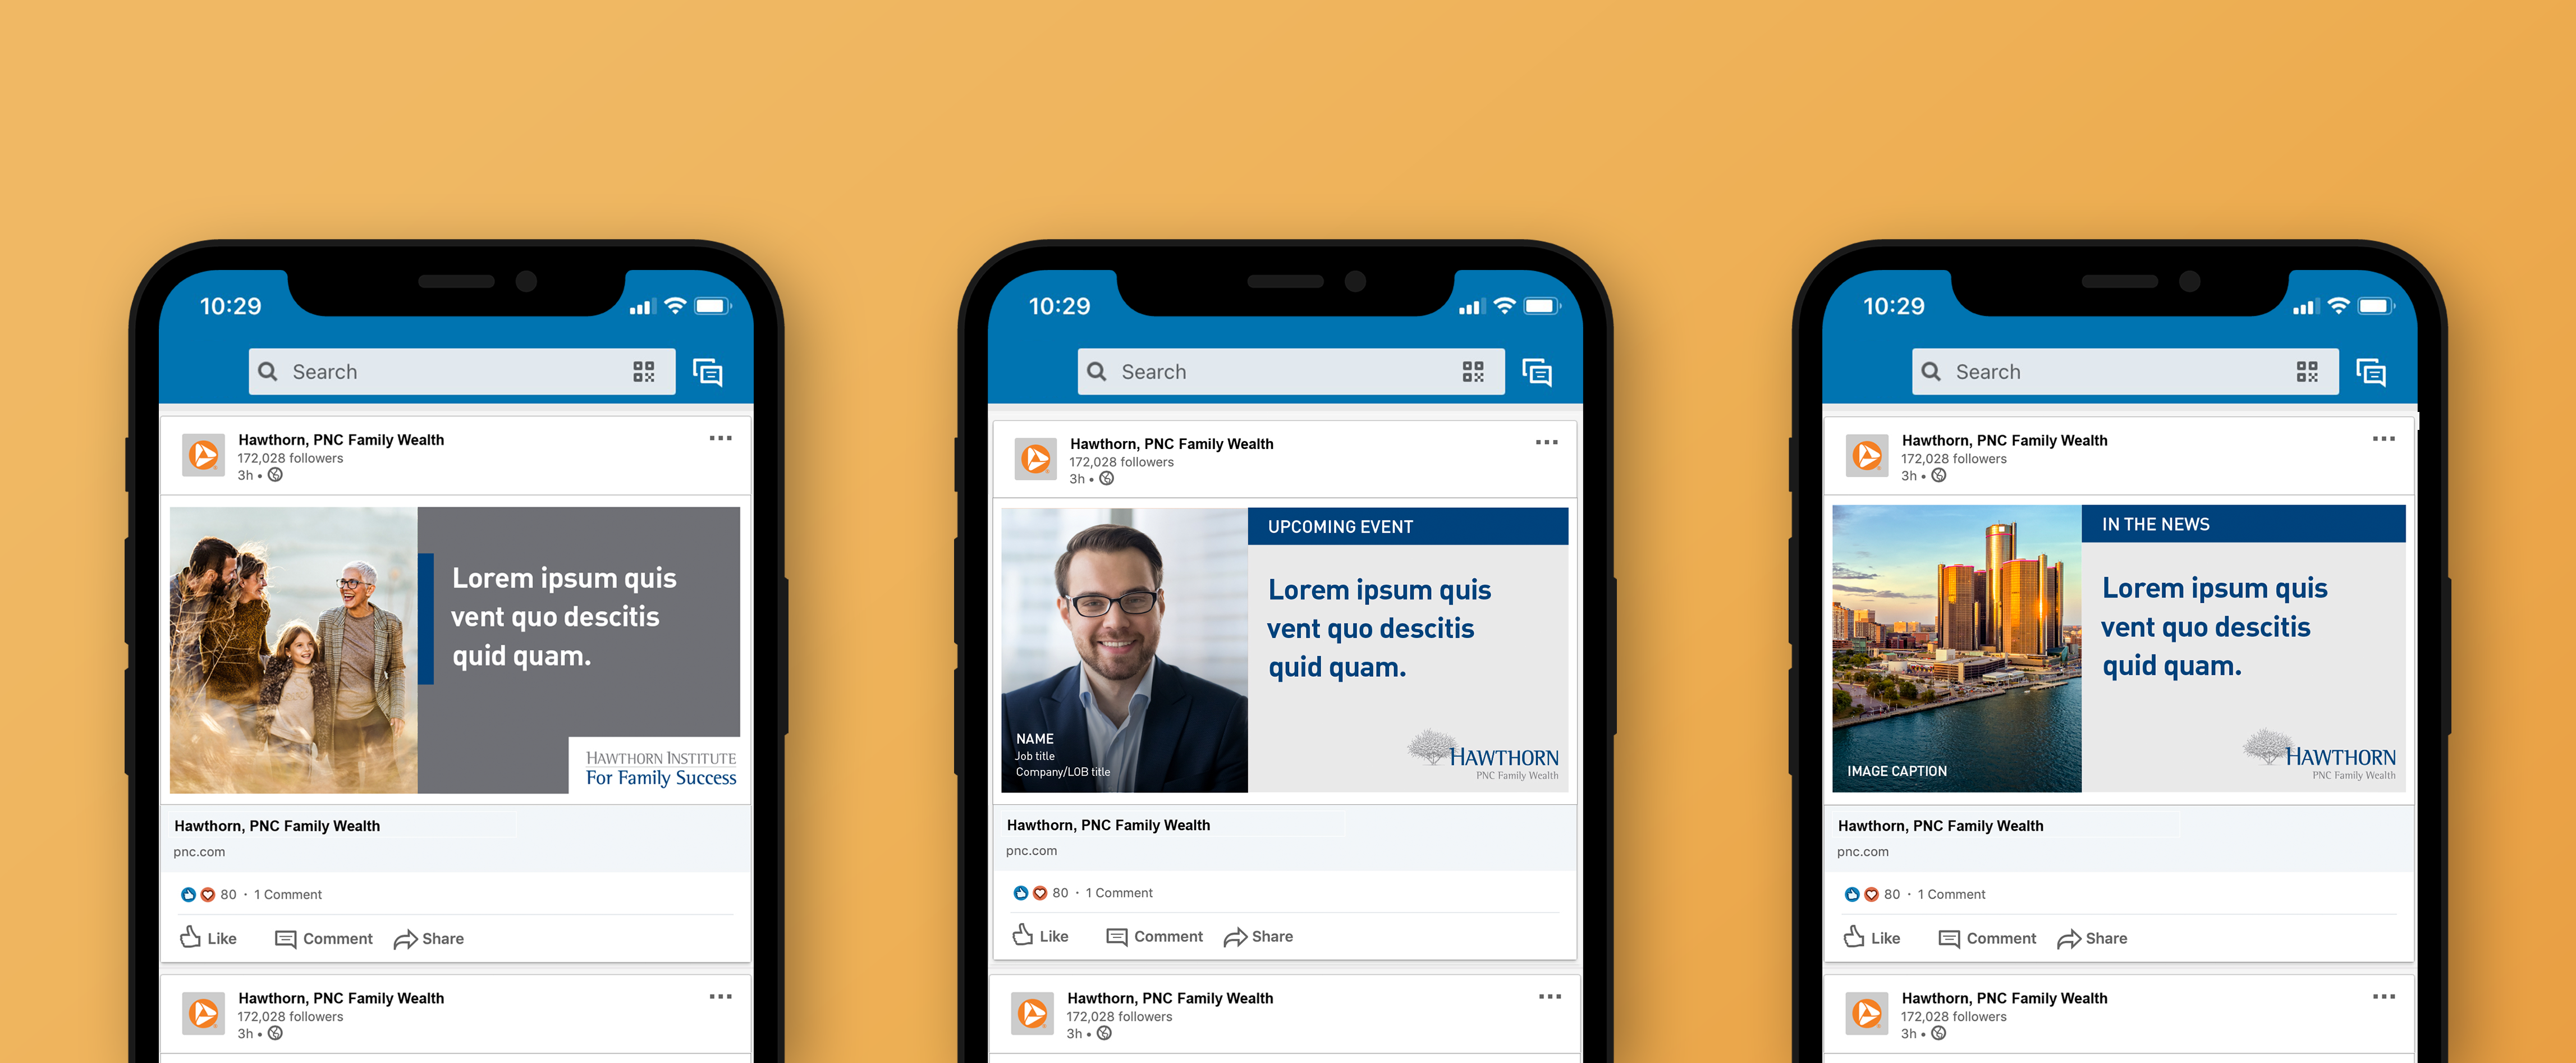 A mockup of three iPhone screens featuring Linkedin posts, over a mustard background. They are mainly dark gray, light gray, and dark blue, and feature full-color imagery.